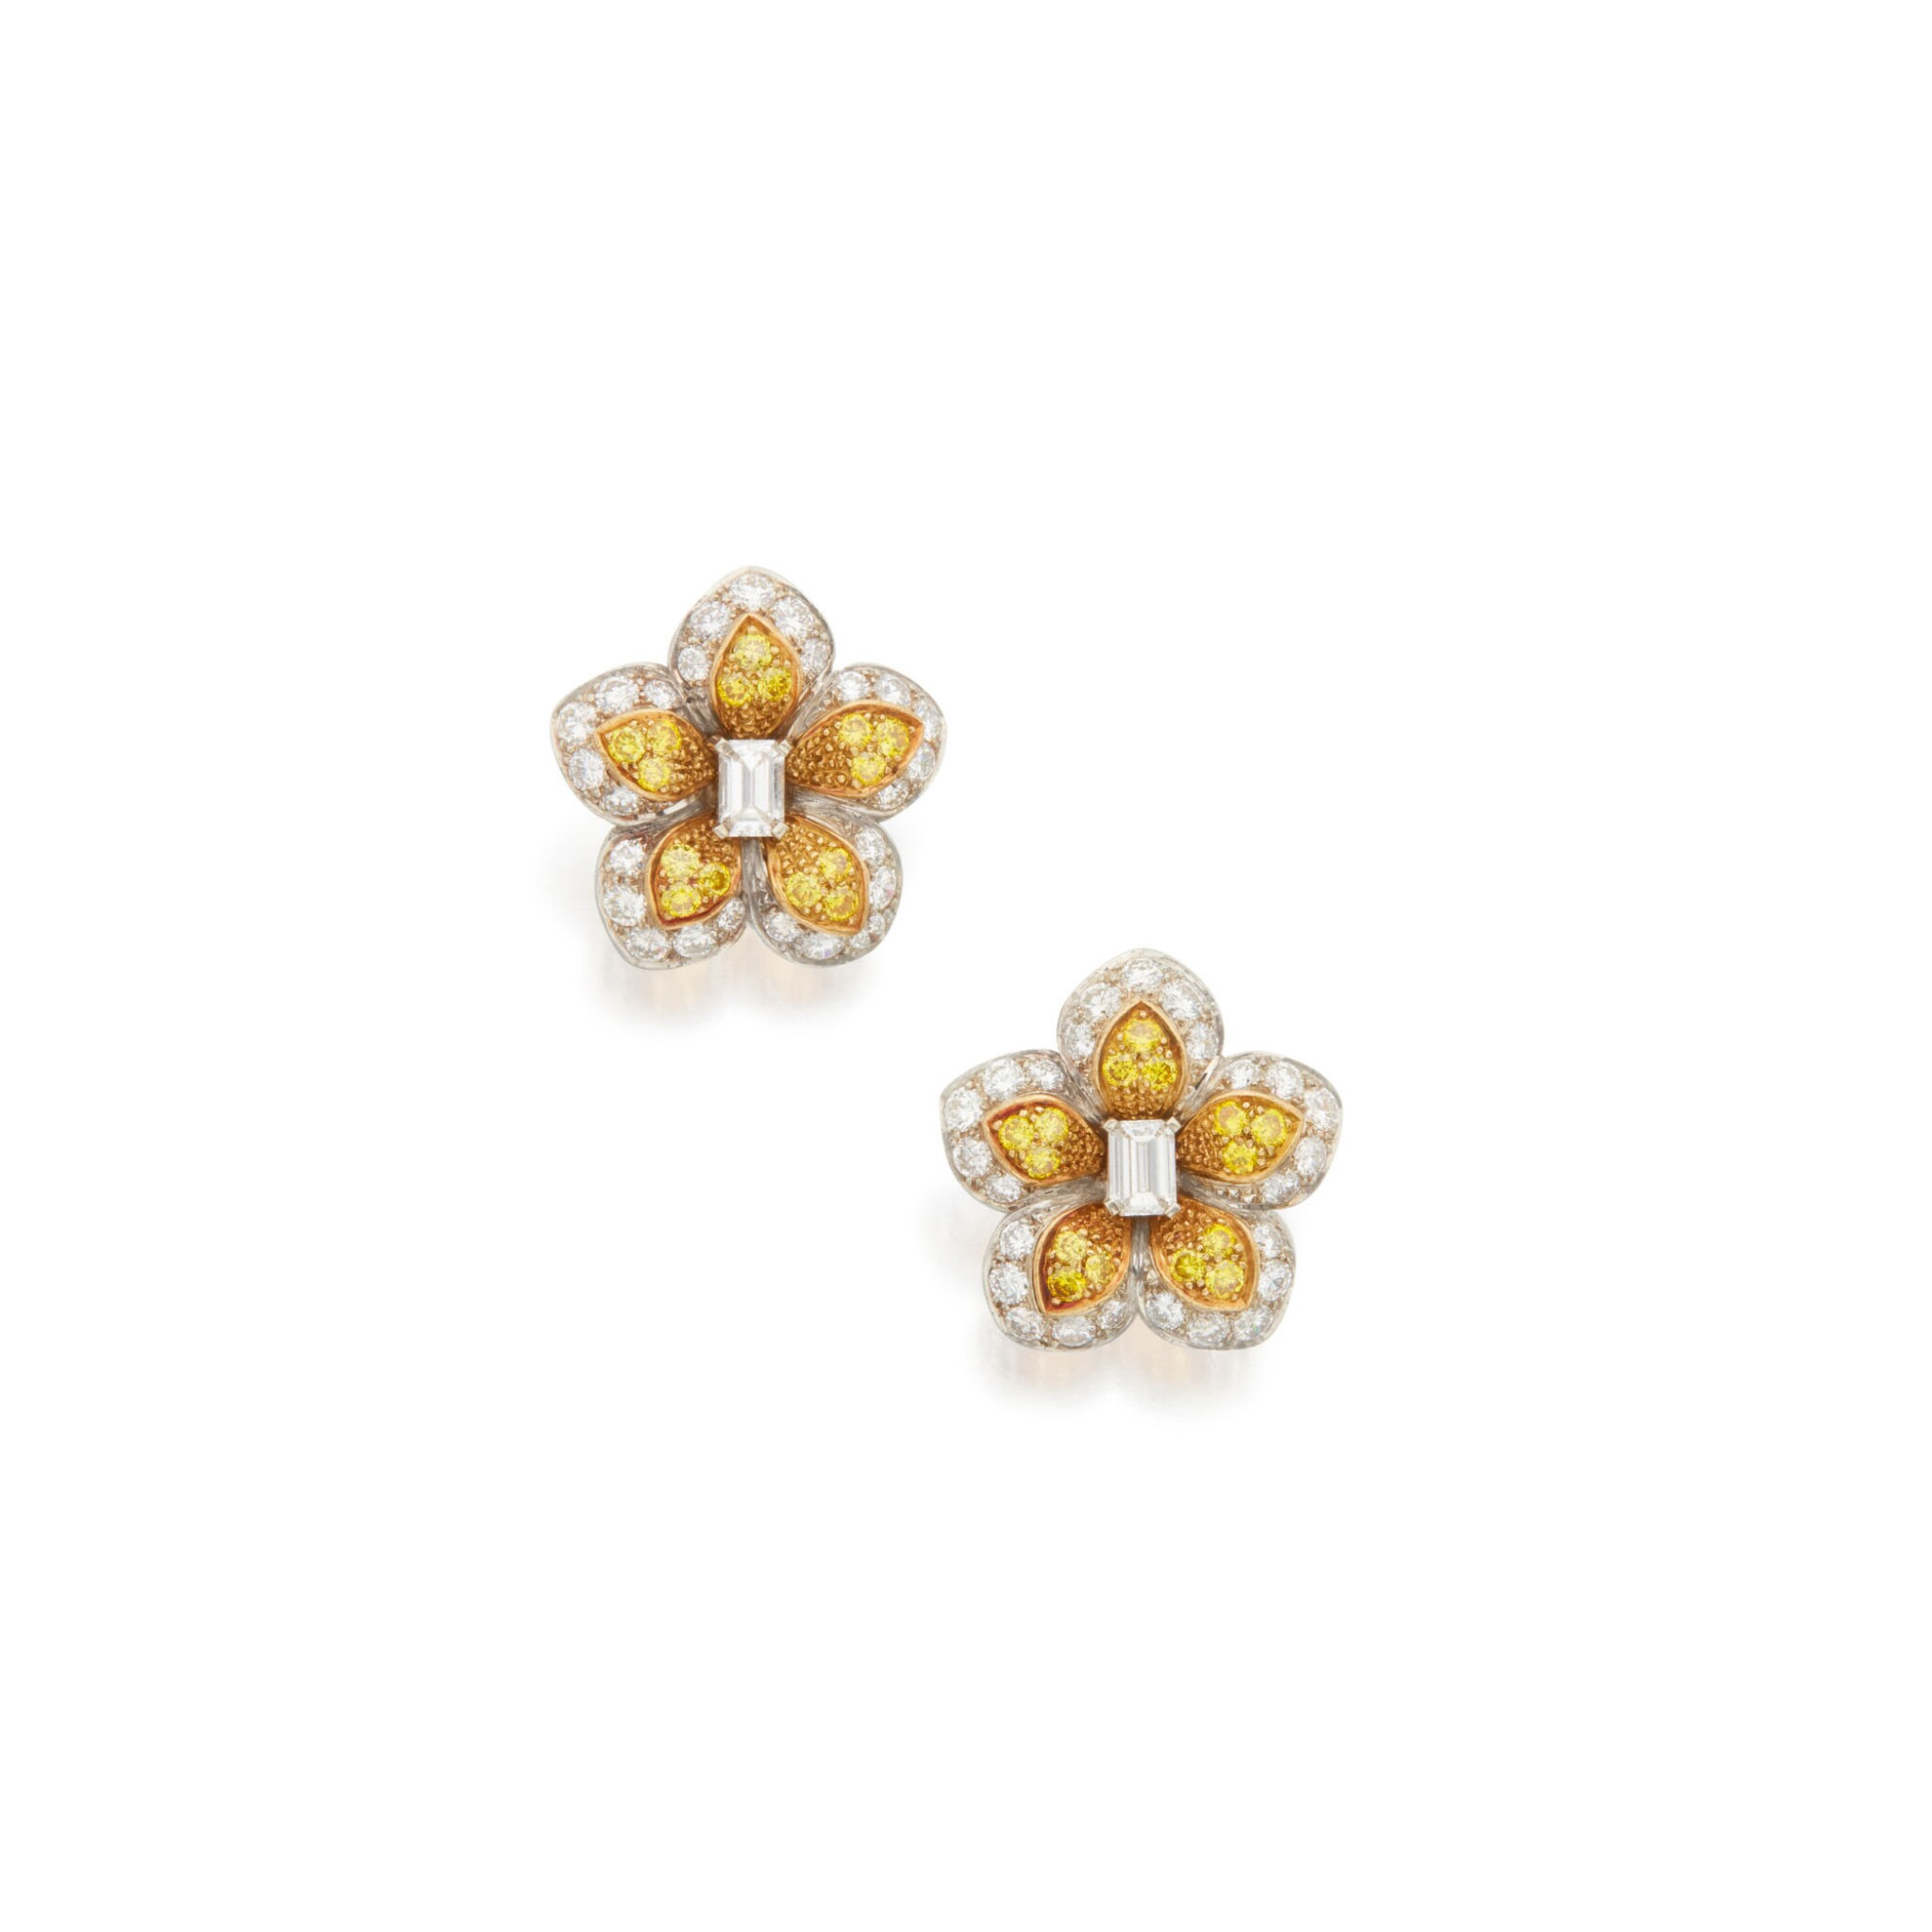 View full screen - View 1 of Lot 91. PAIR OF DIAMOND AND COLORED DIAMOND EARCLIPS, VAN CLEEF & ARPELS.